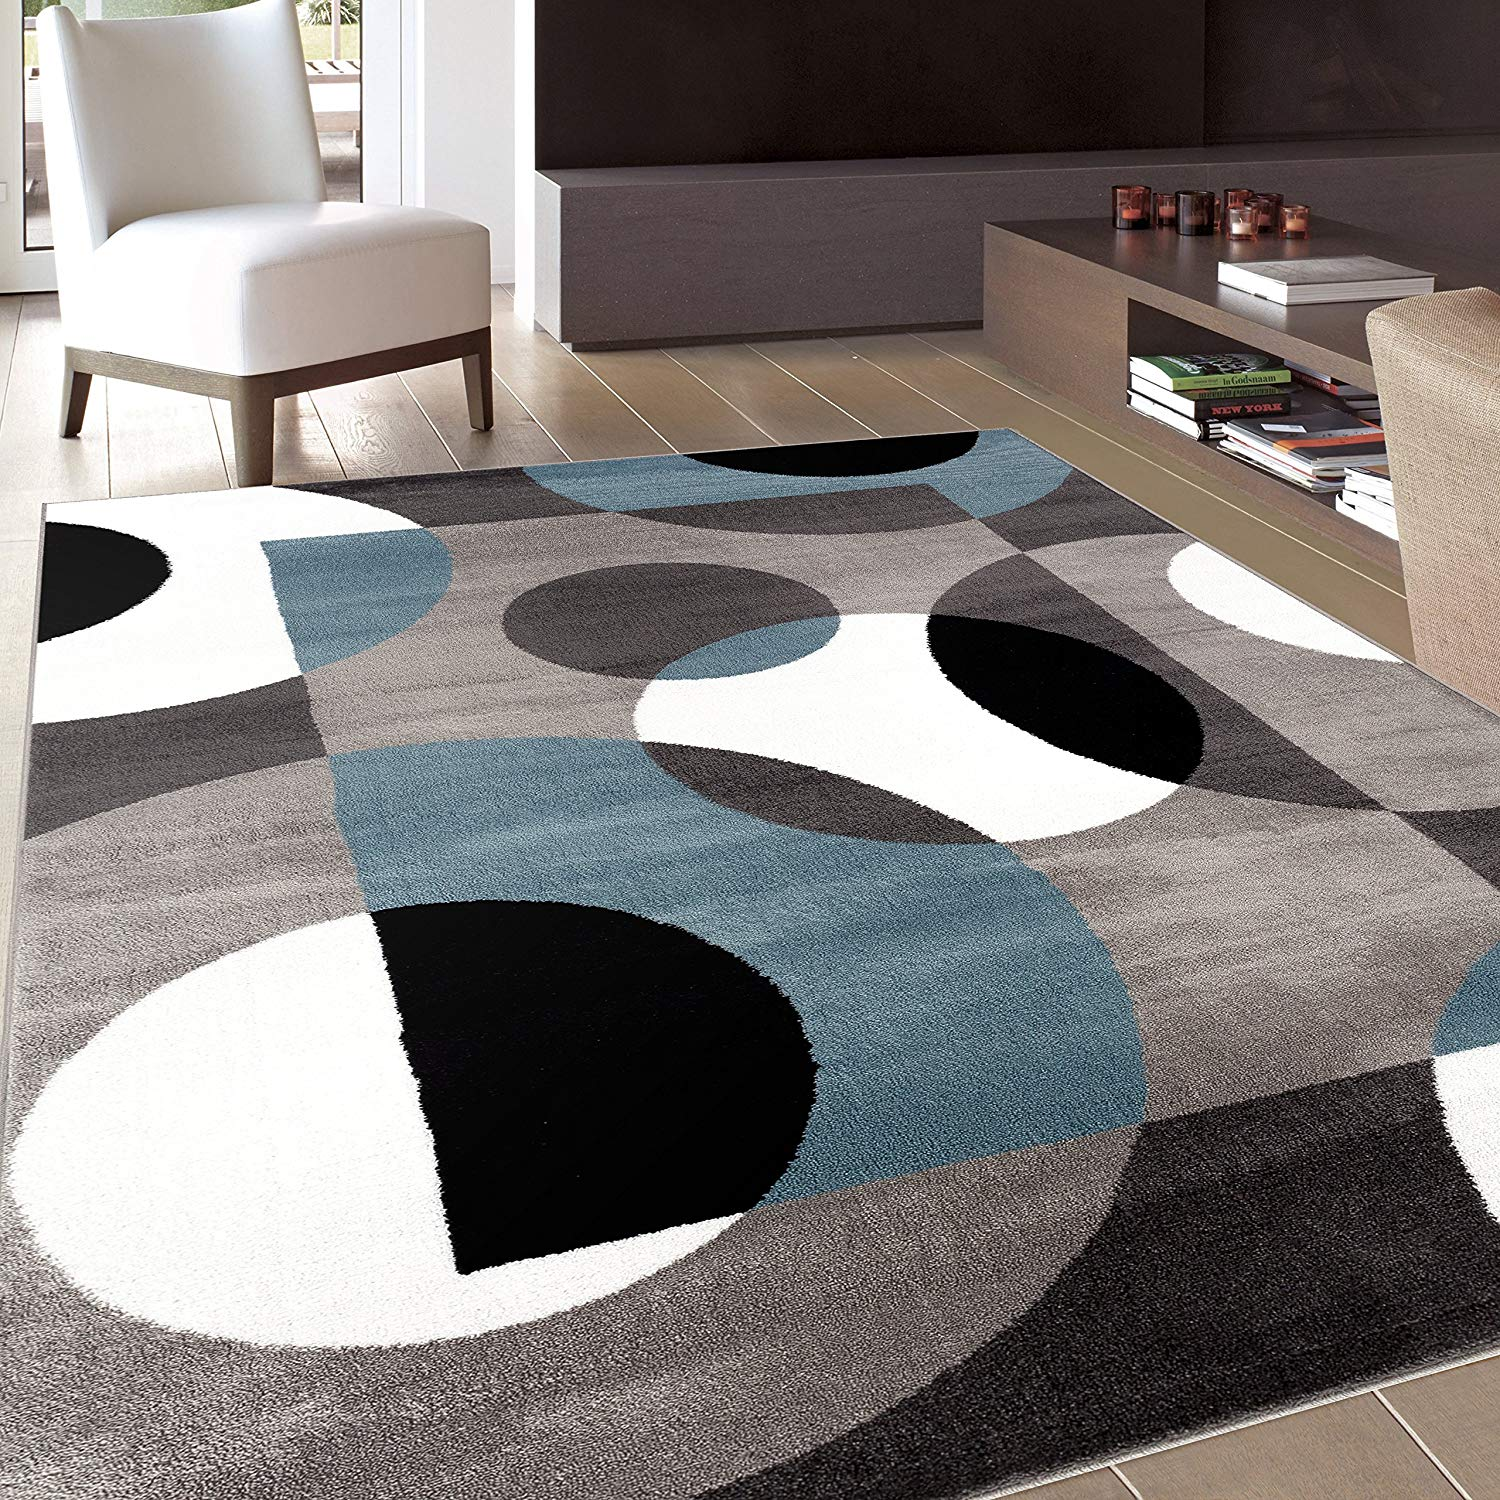 Decorate your space with modern area rugs